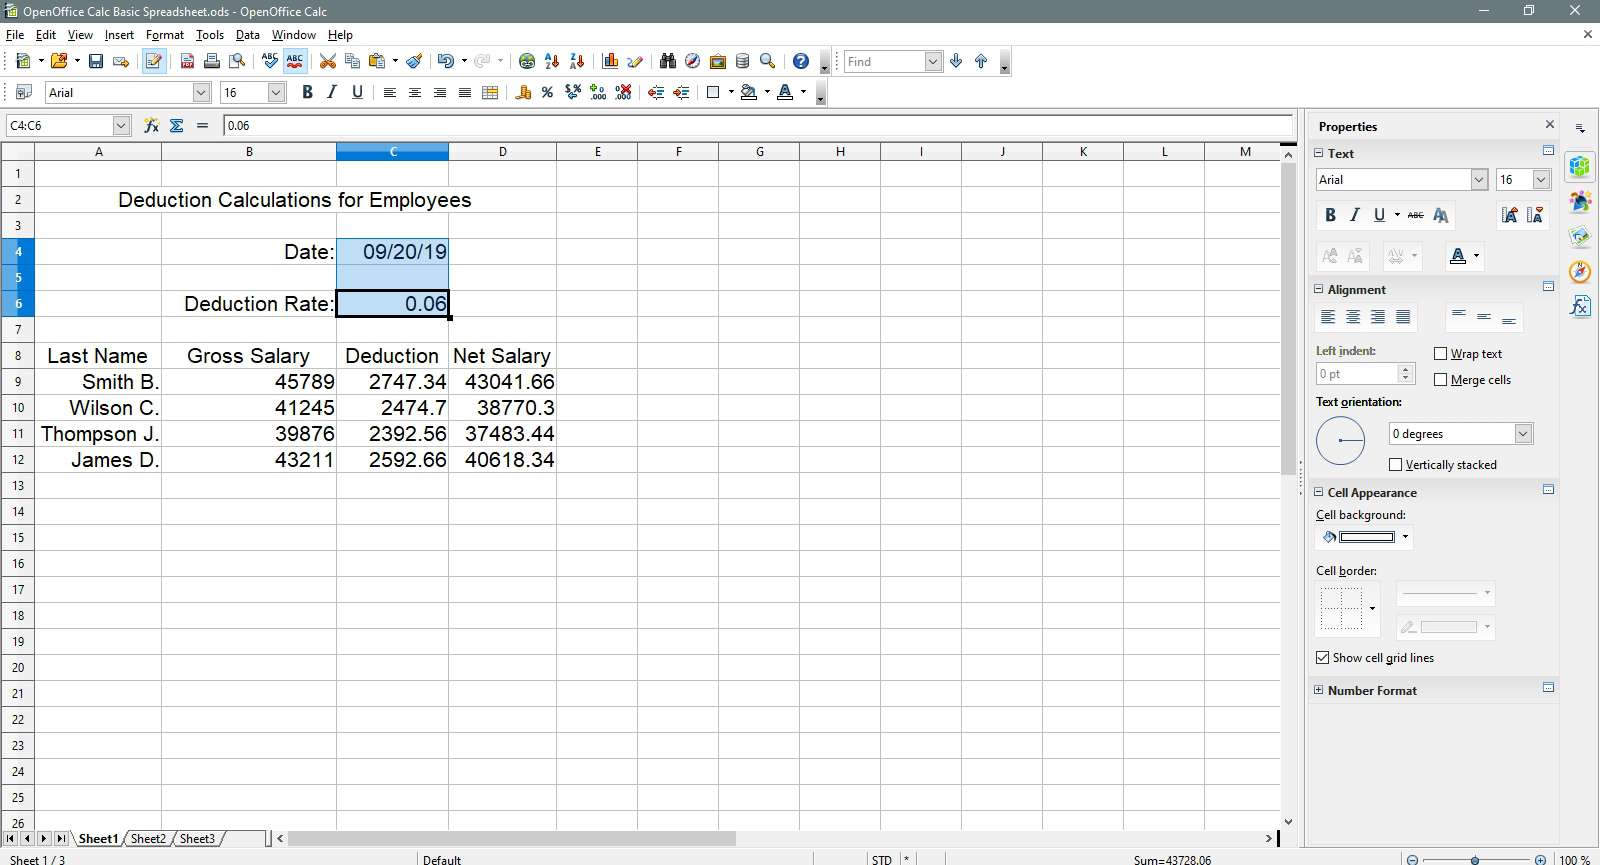 Date and deduction rate cells are highlighted in OpenOffice Calc.